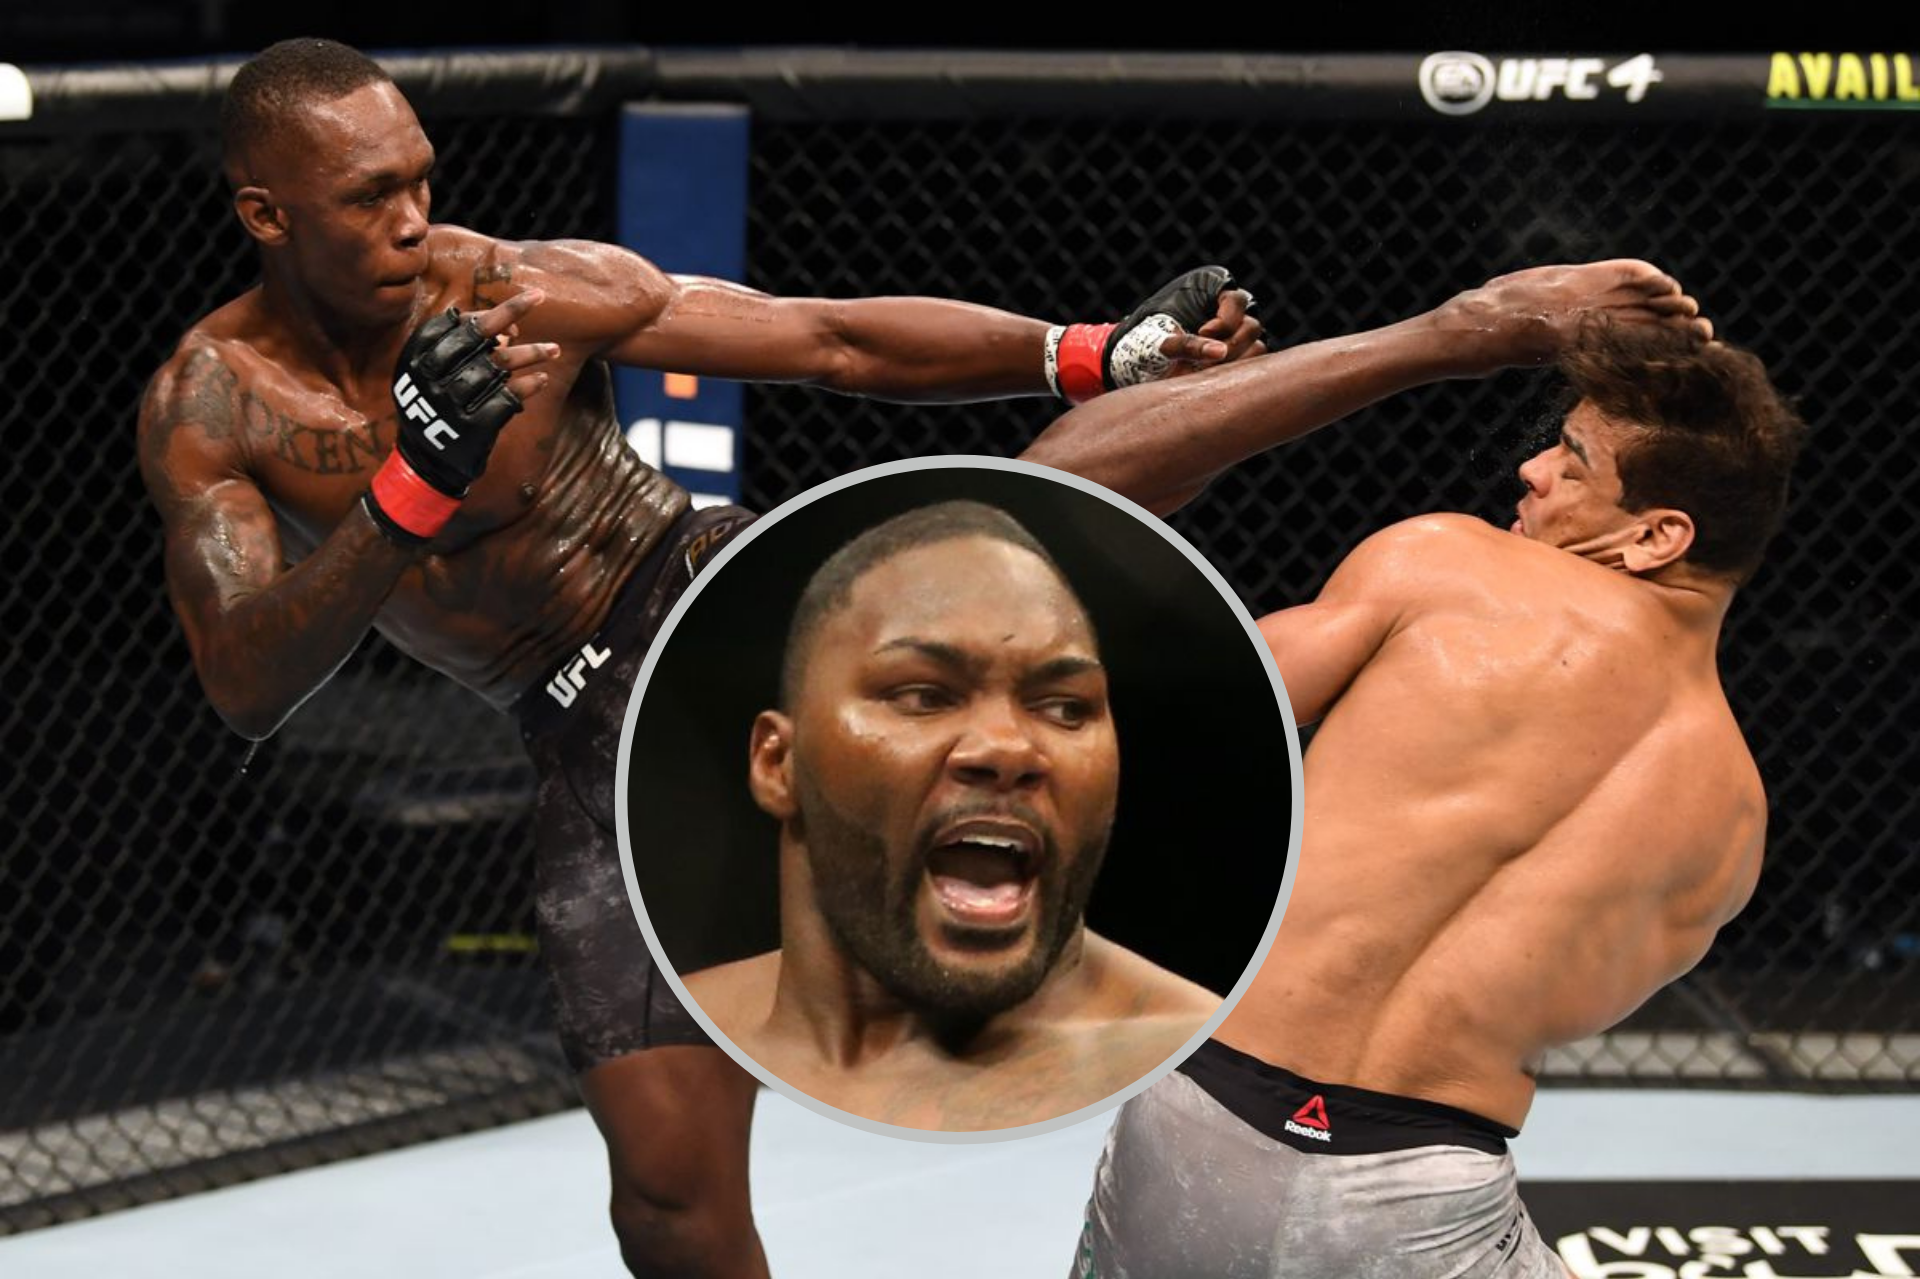 Anthony Johnson tells Paulo Costa to 'grow some balls' and accept loss to Adesanya - Paulo Costa